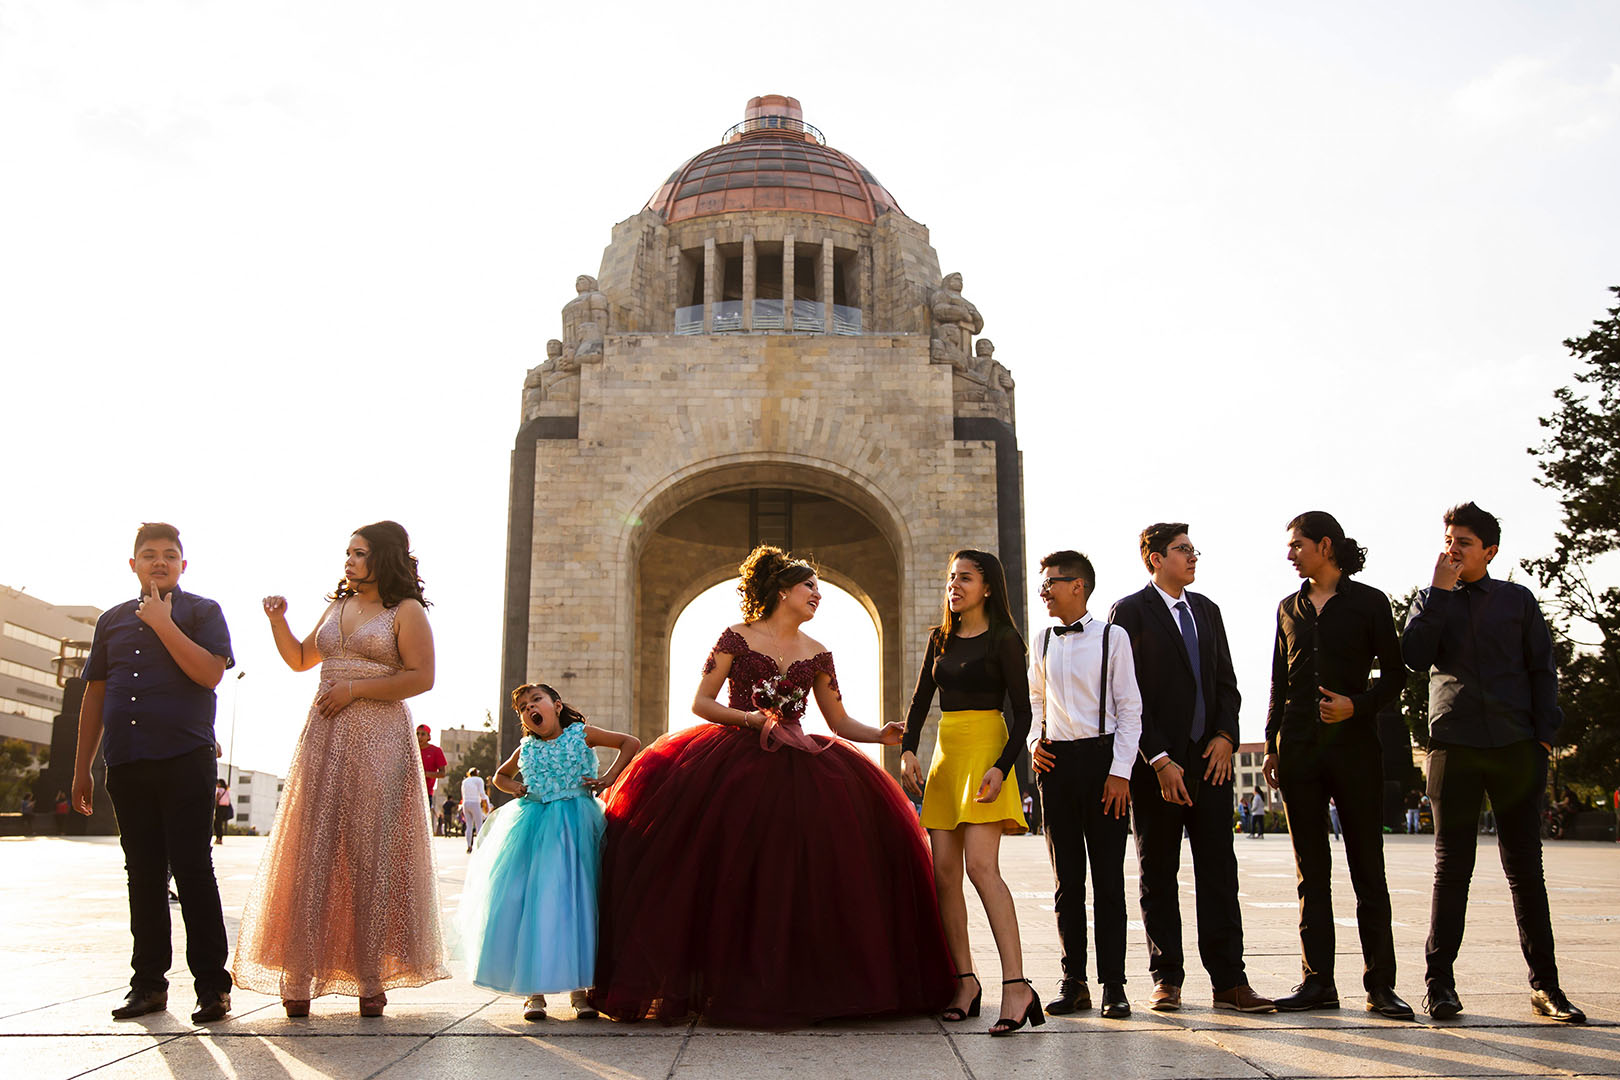 Leslie Valeria prepares for a photo session for her quinceanera at Monumento a la Revolucion in Mexico City.